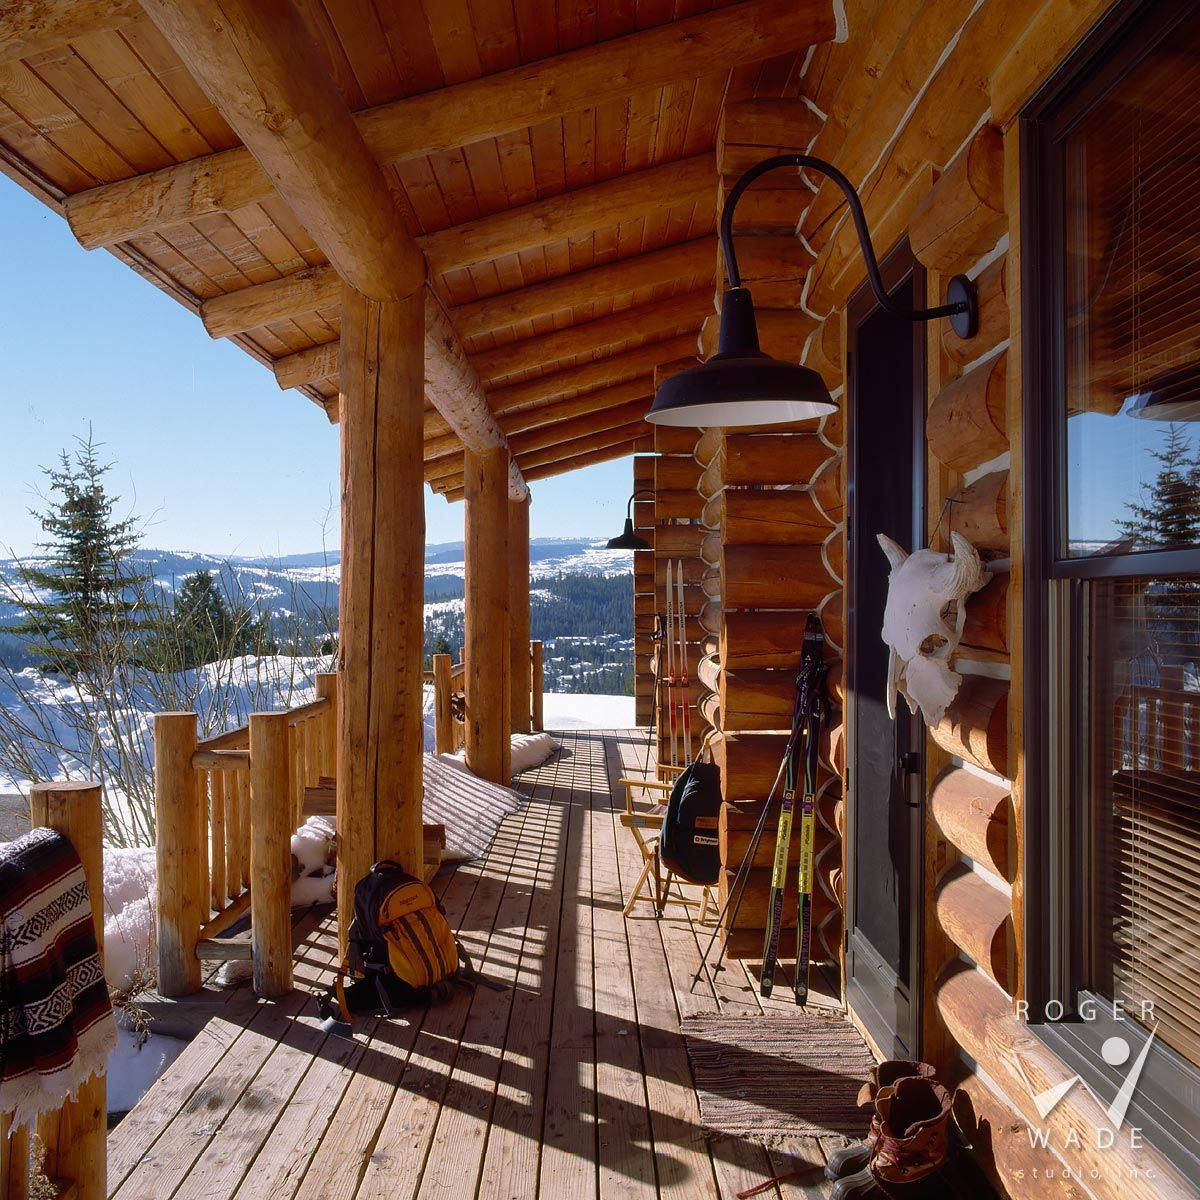 Roger Wade Studio Architectural Photography Of Front Porch And Entry Of Log  Home In Winter, Private Cabin, Big Sky, Montana, By Blue Ribbon Builders